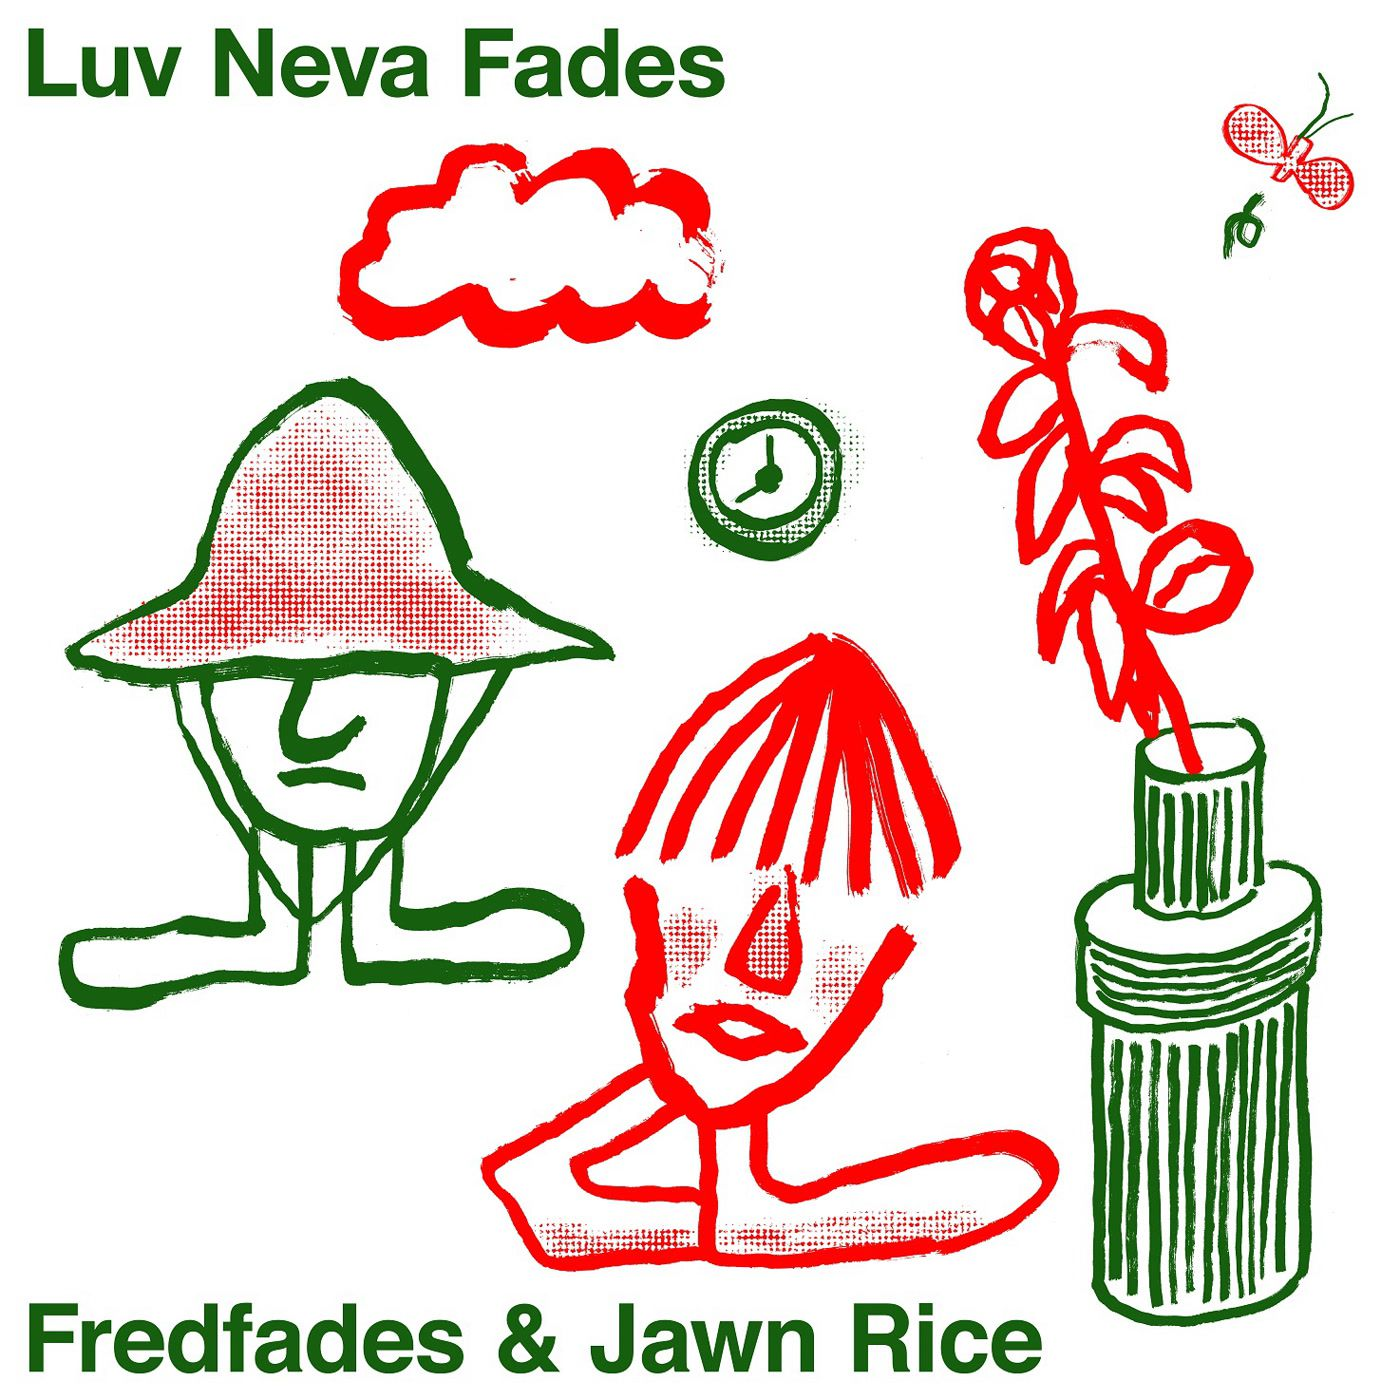 Fred Fades & Jawnrice -  Luv Neva Fades